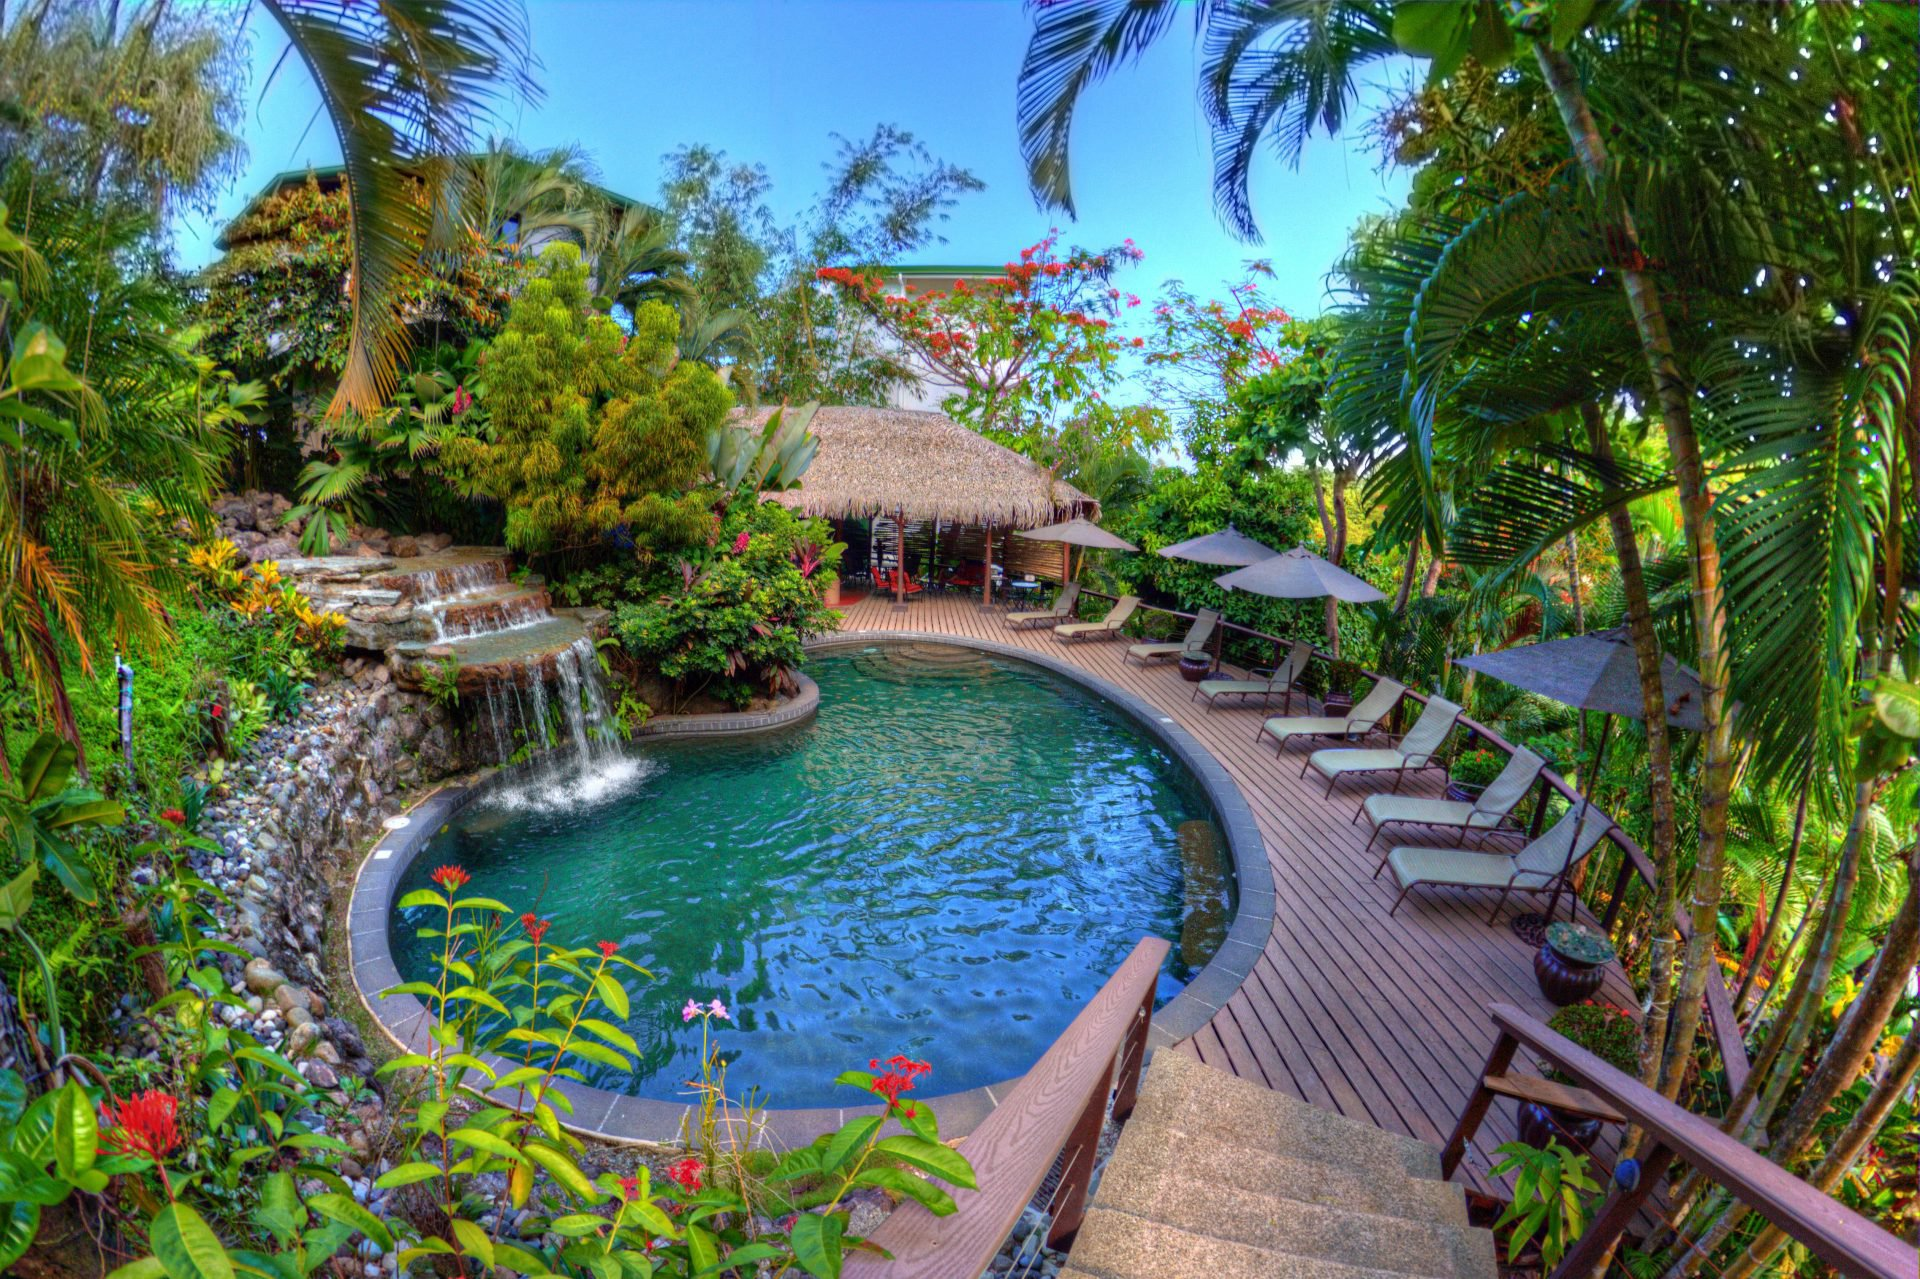 Tulemar resort in Costa Rica has been named the top Travelers' Choice Hotel in the Worldby TripAdvisor. (Picture: Tulemar)